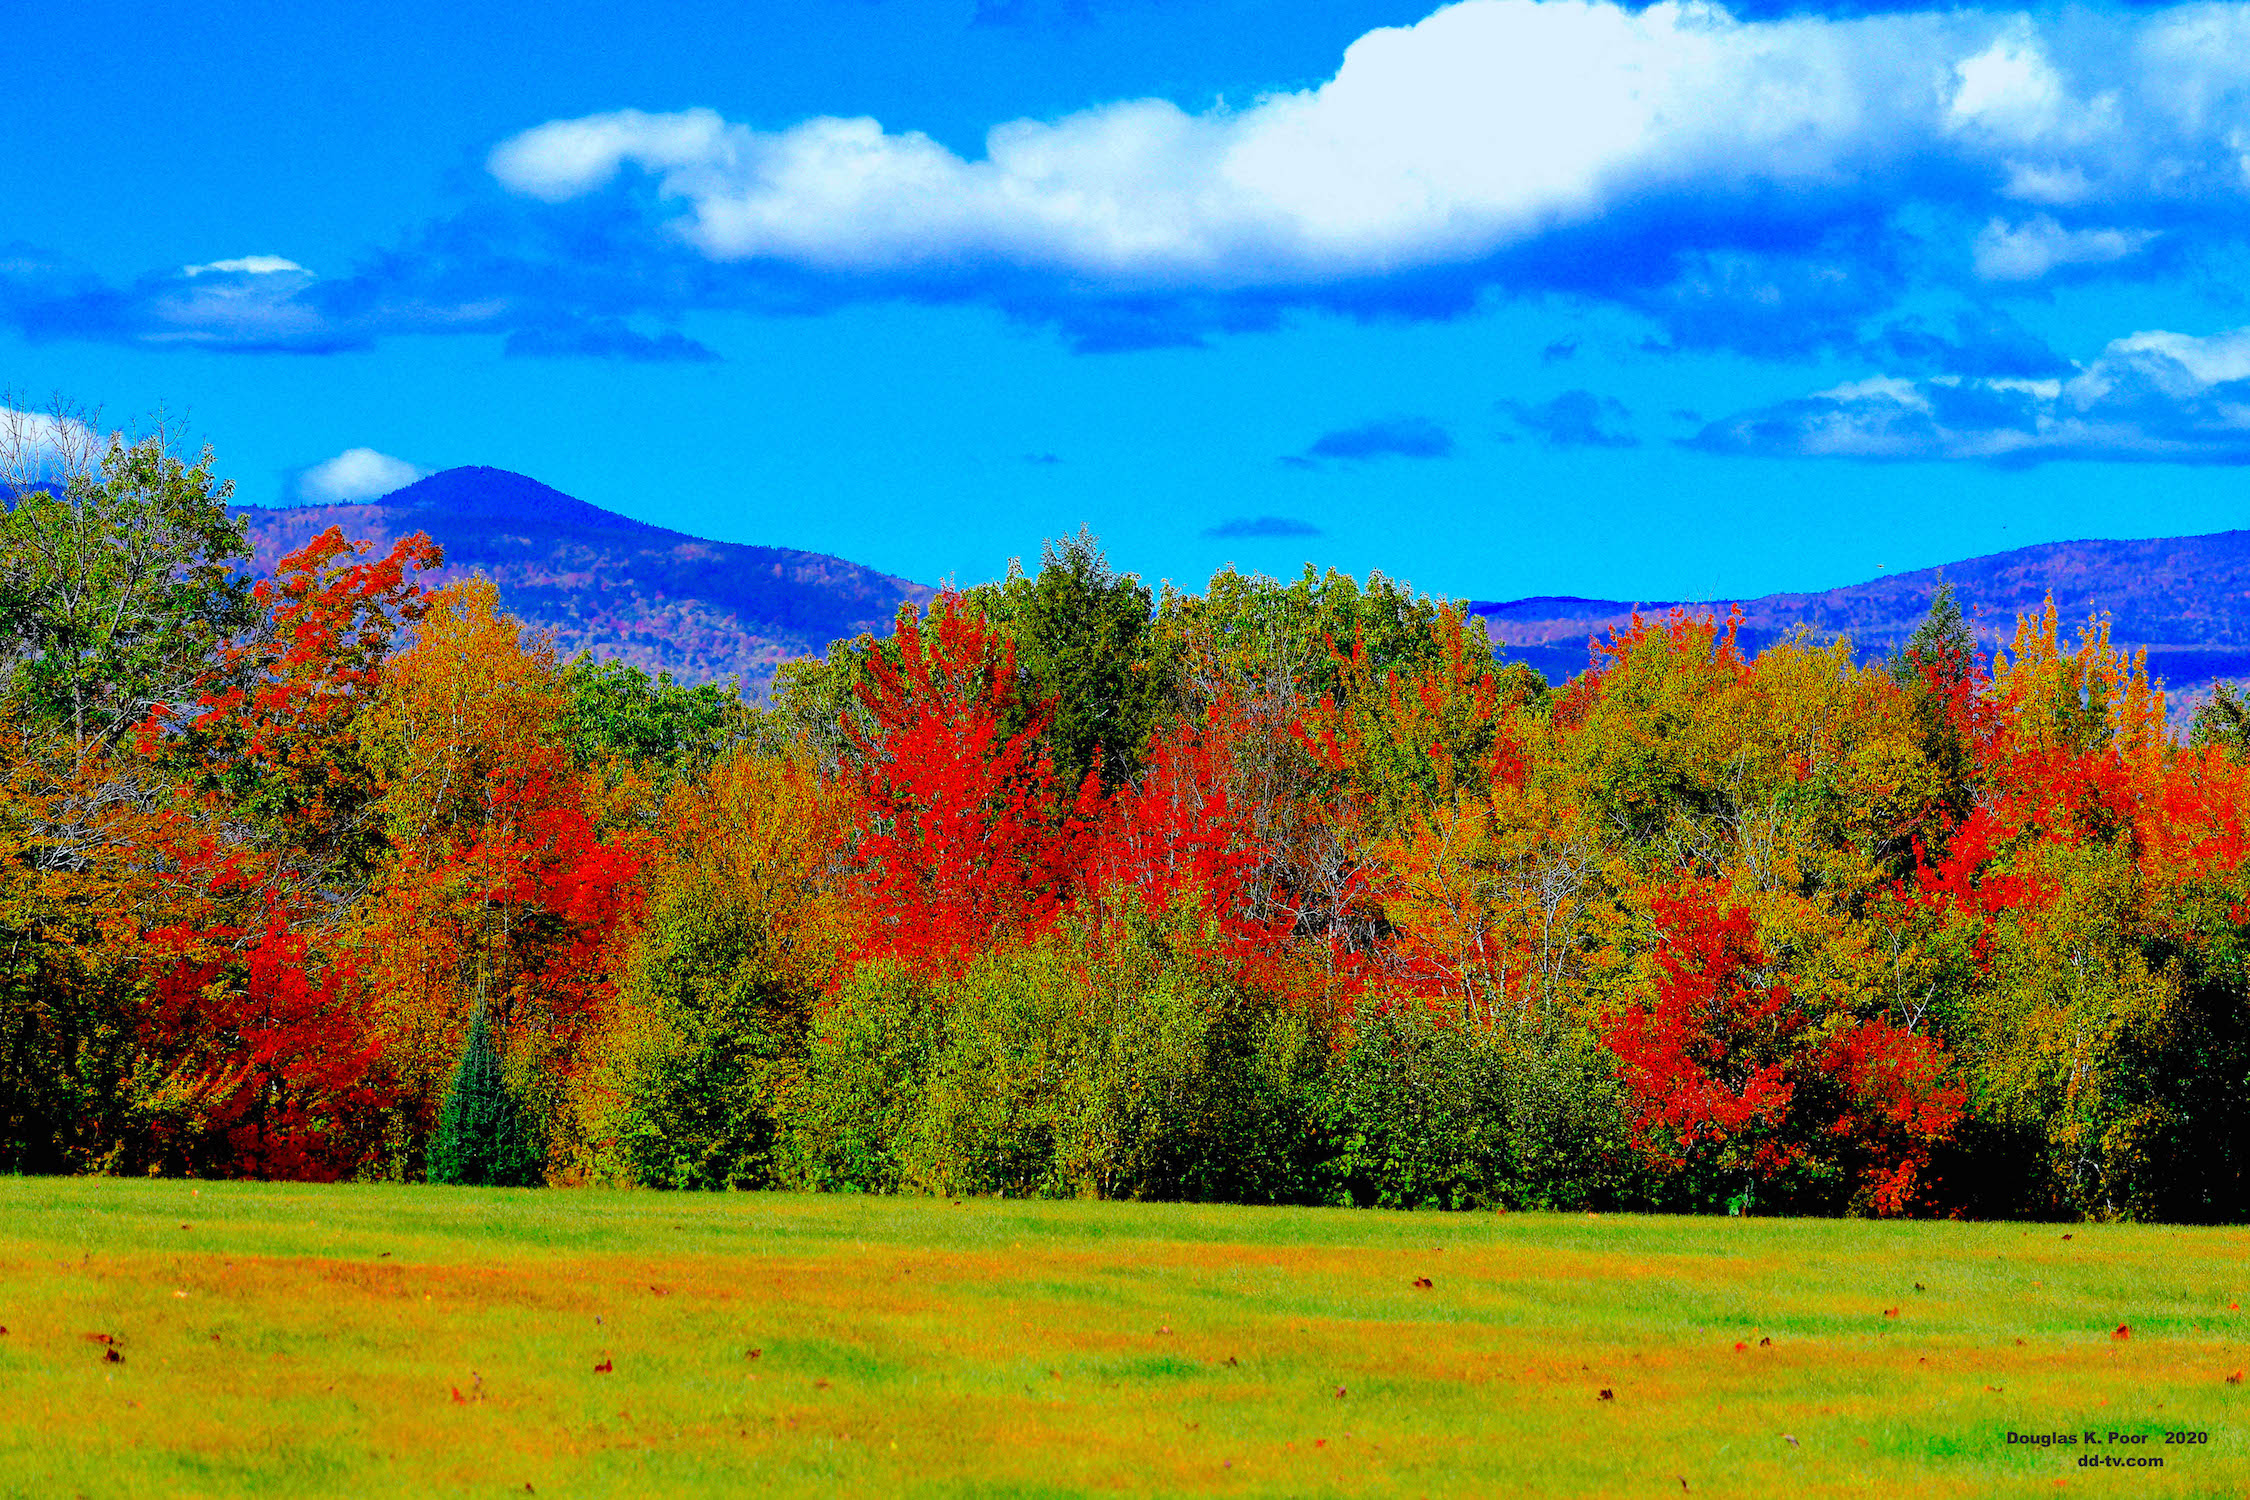 ===============-FIELD-FOLIAGE-AND-MTNS-26-smaller-size============================================================================================================-FIELD-FOLIAGE-AND-MTNS-26-smaller-size